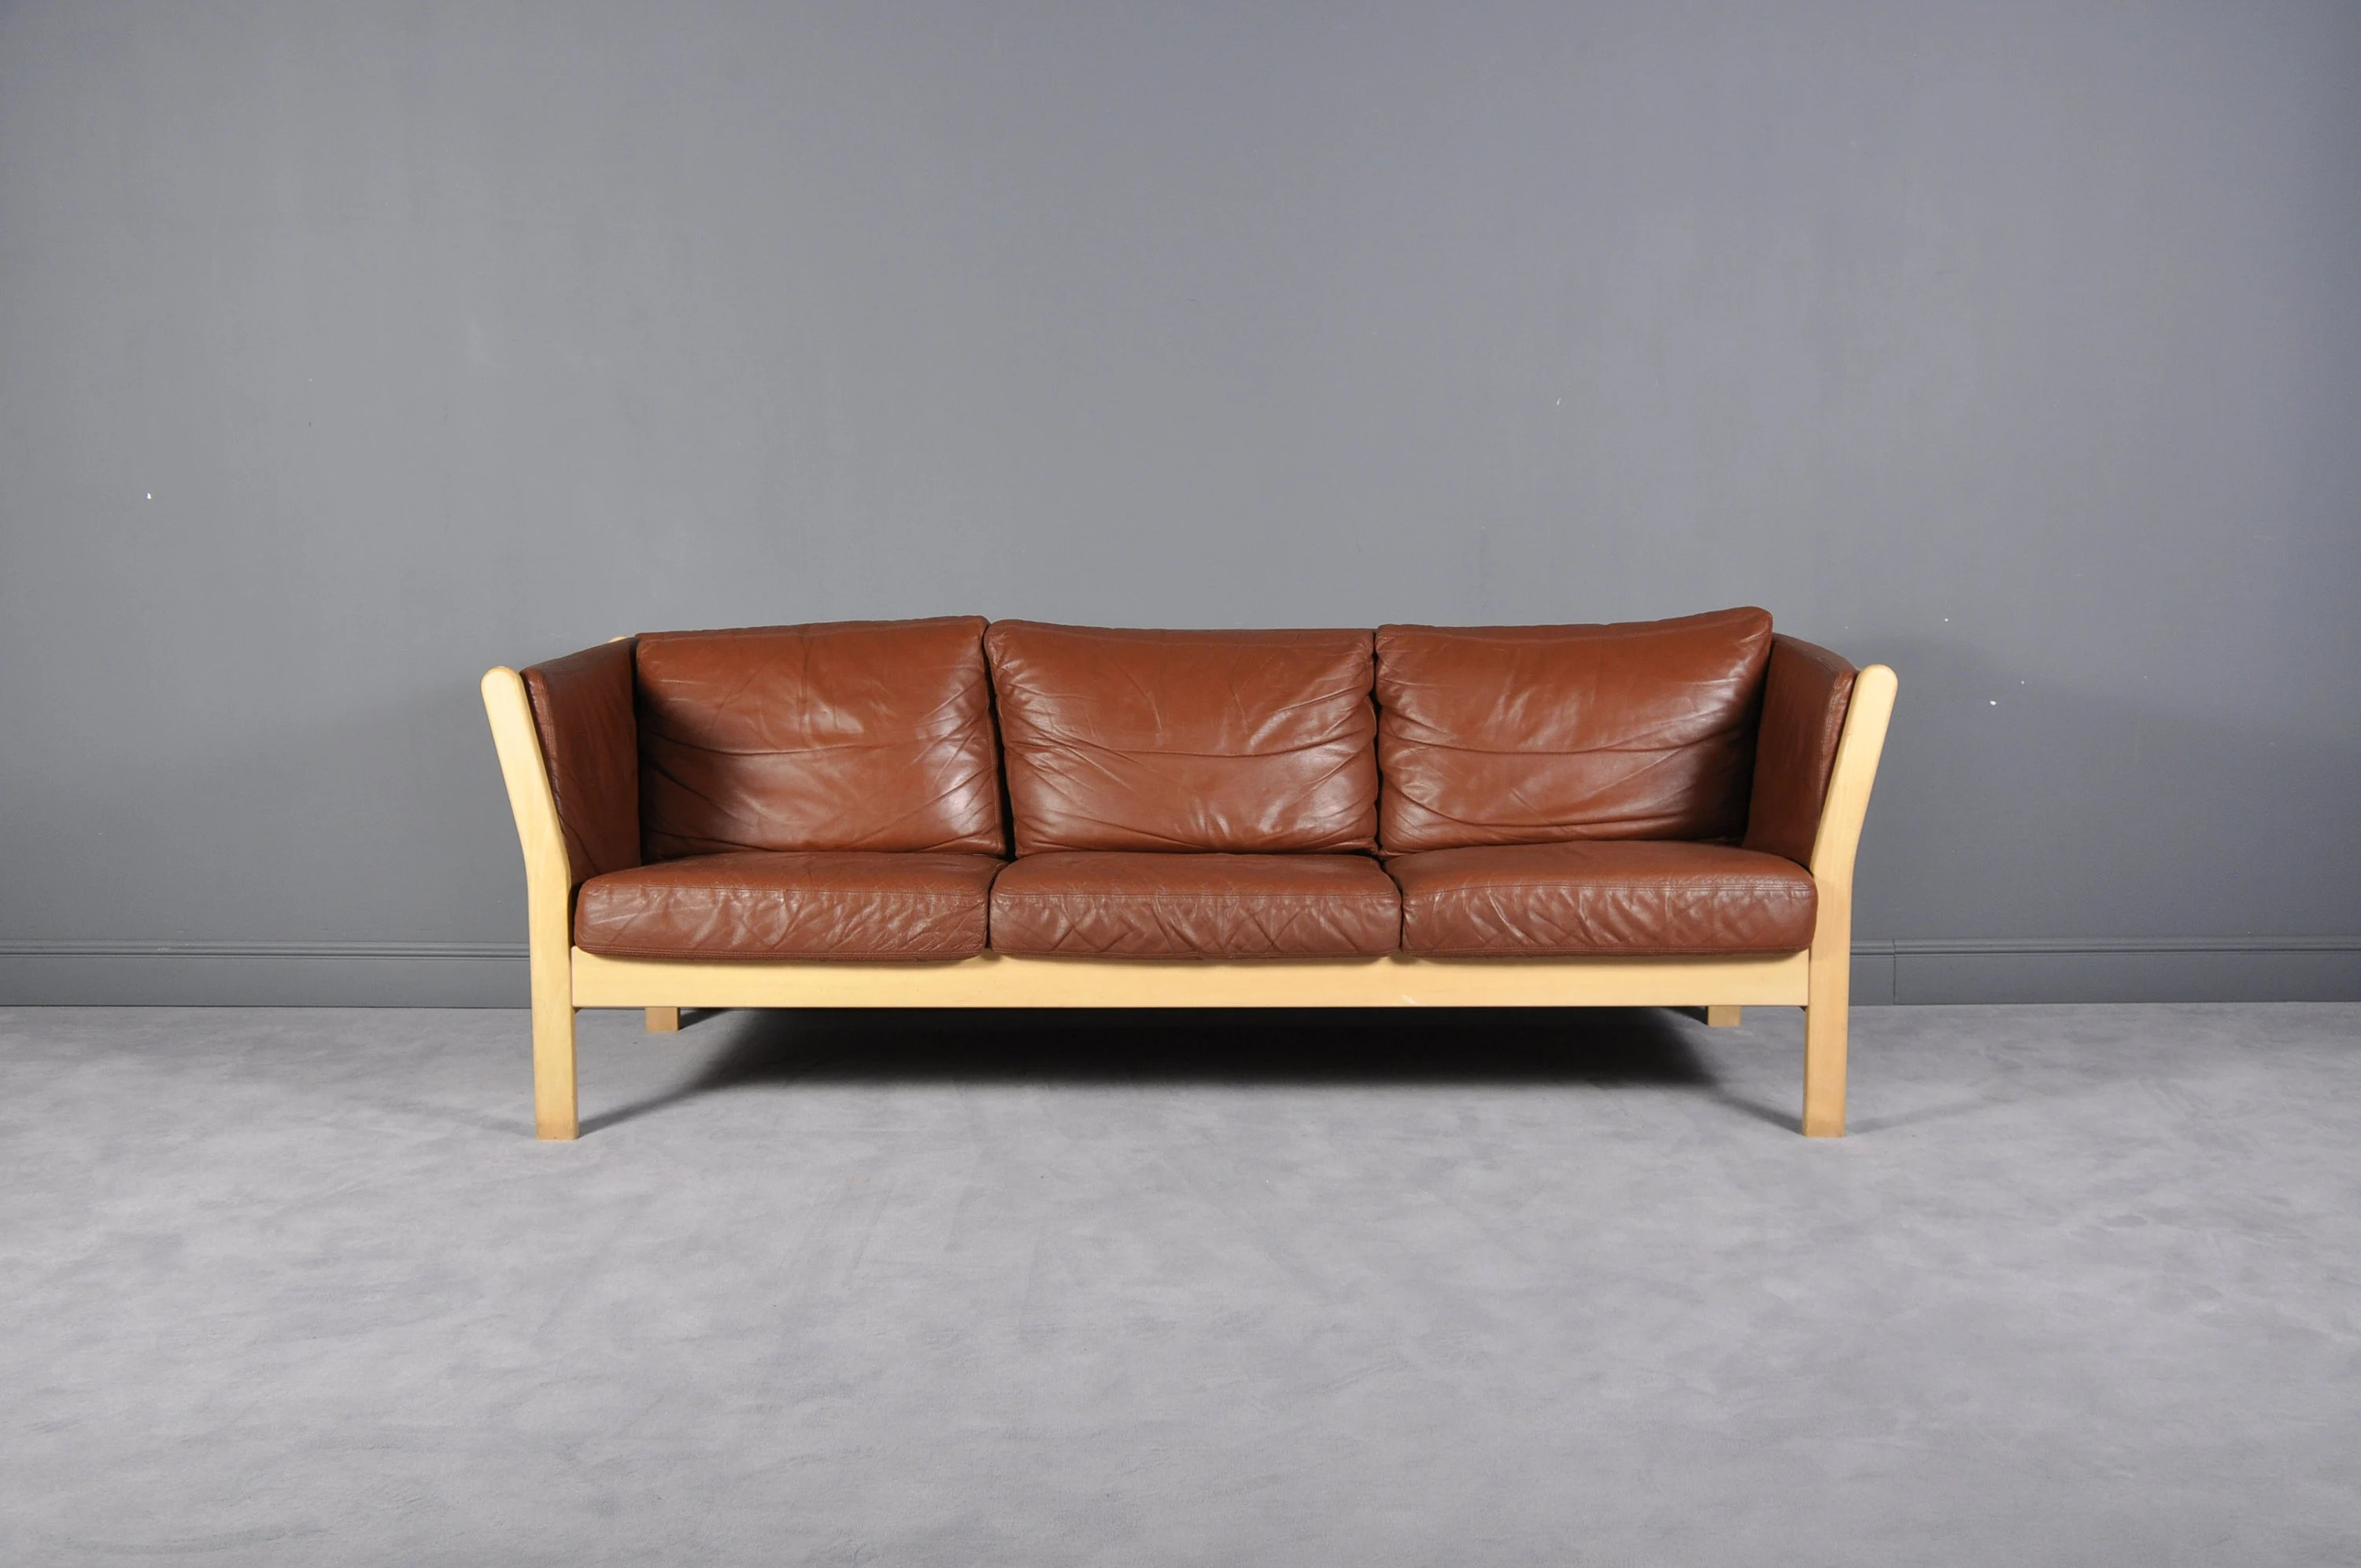 Polster Couch Danish Cognac Leather Sofa From Stouby Polster Mobelfabrik Denmark 1970s